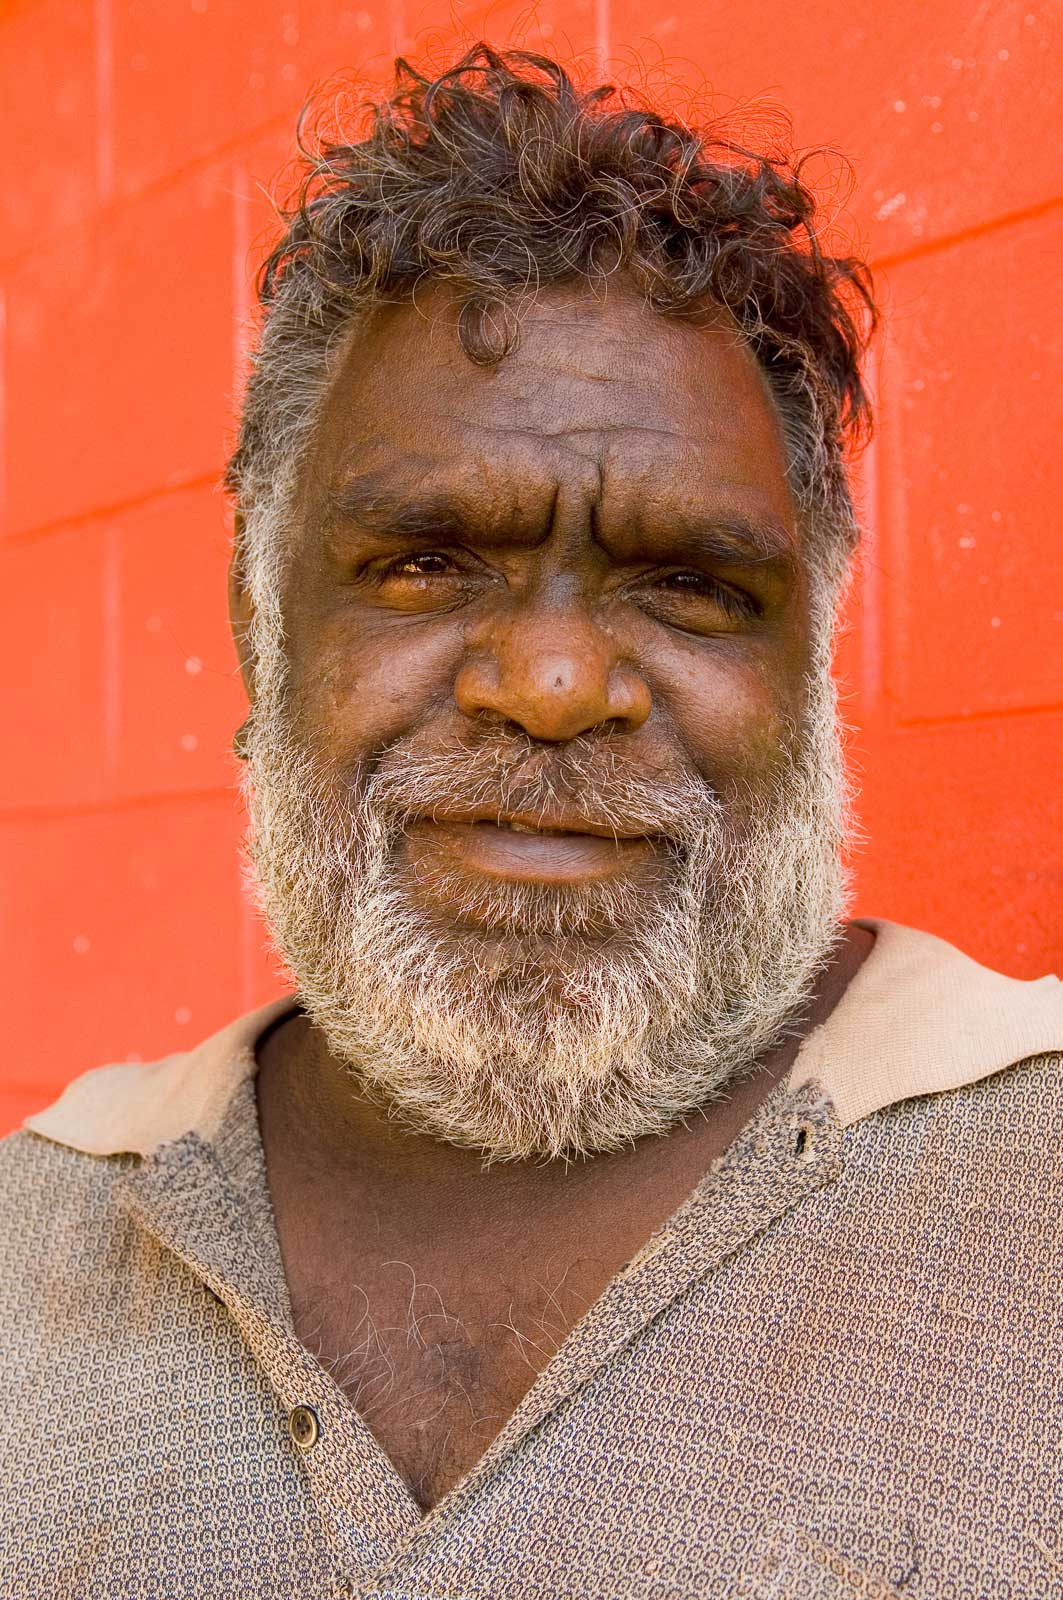 image of AARONTAIT COPYRIGHTED 2014 5272 EDITORIAL DOCUMENTARY PHOTOGRAPHER PAPUNYA NORTHERN TERRITORY AUSTRALIA LANDSCAPE LIFE PEOPLE ART INDIGENOUS PINTUPI LURITJA PAPUNYA TULA SAMMY BUTCHER WARUMPI BAND ELD